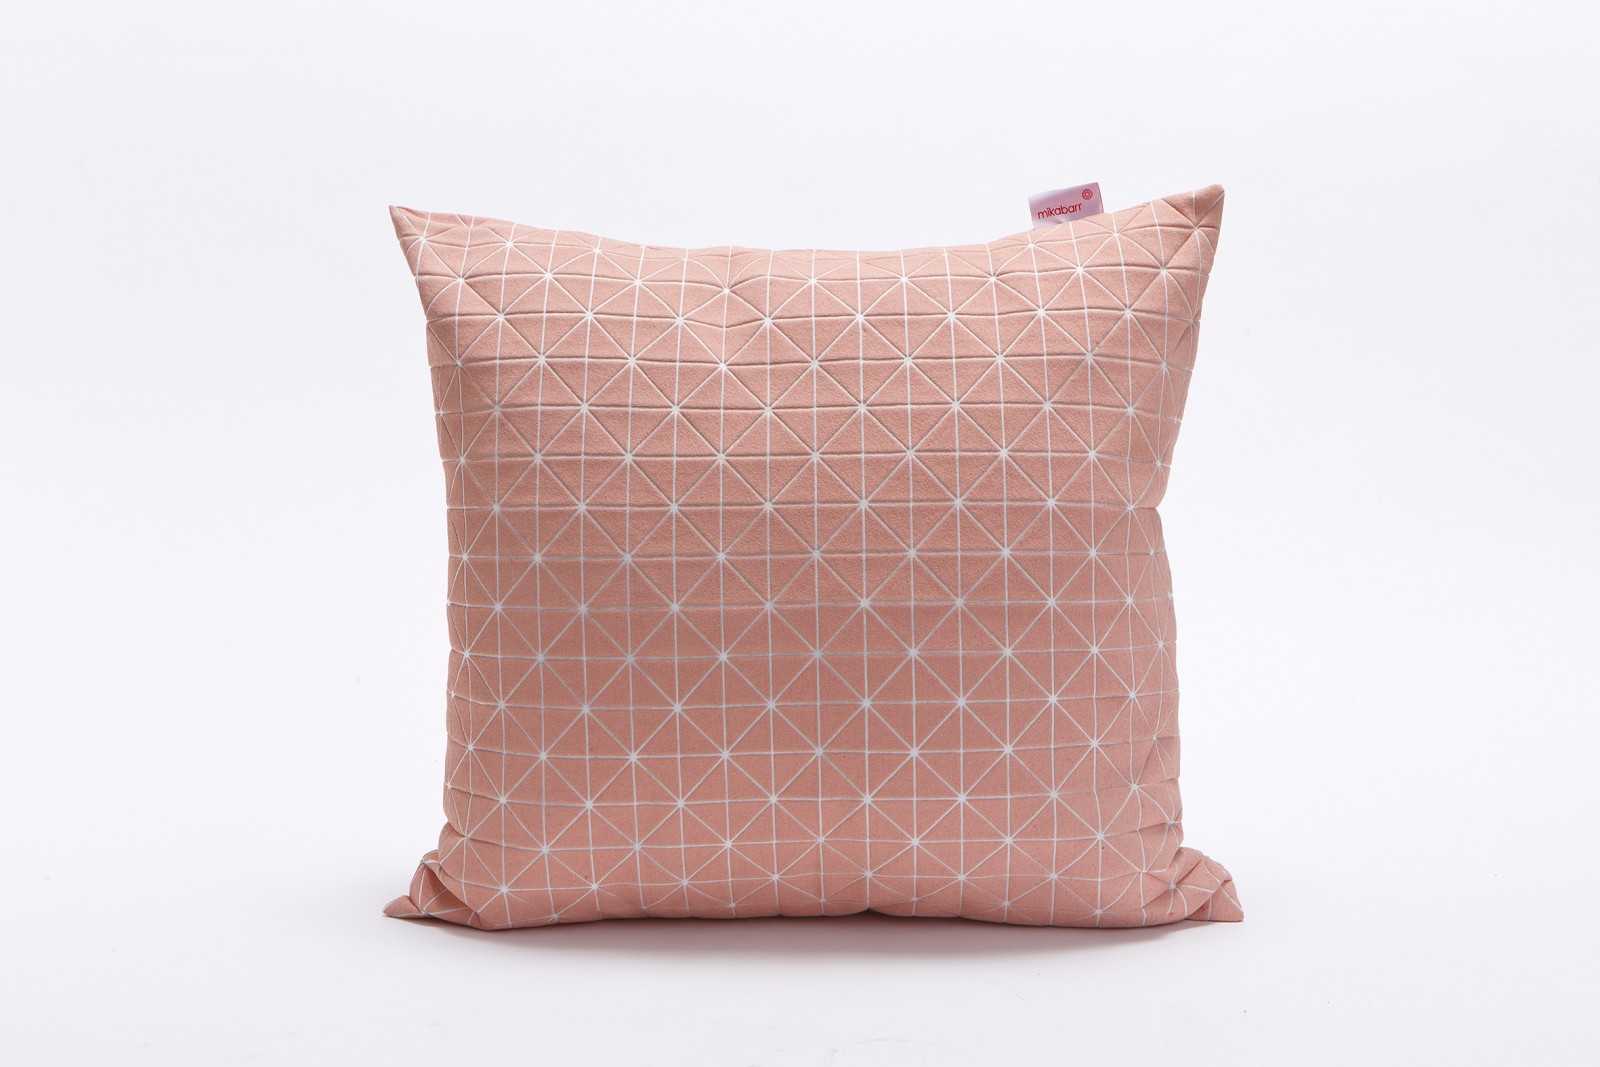 Geo Origami Square Cushion Cover Pink & White